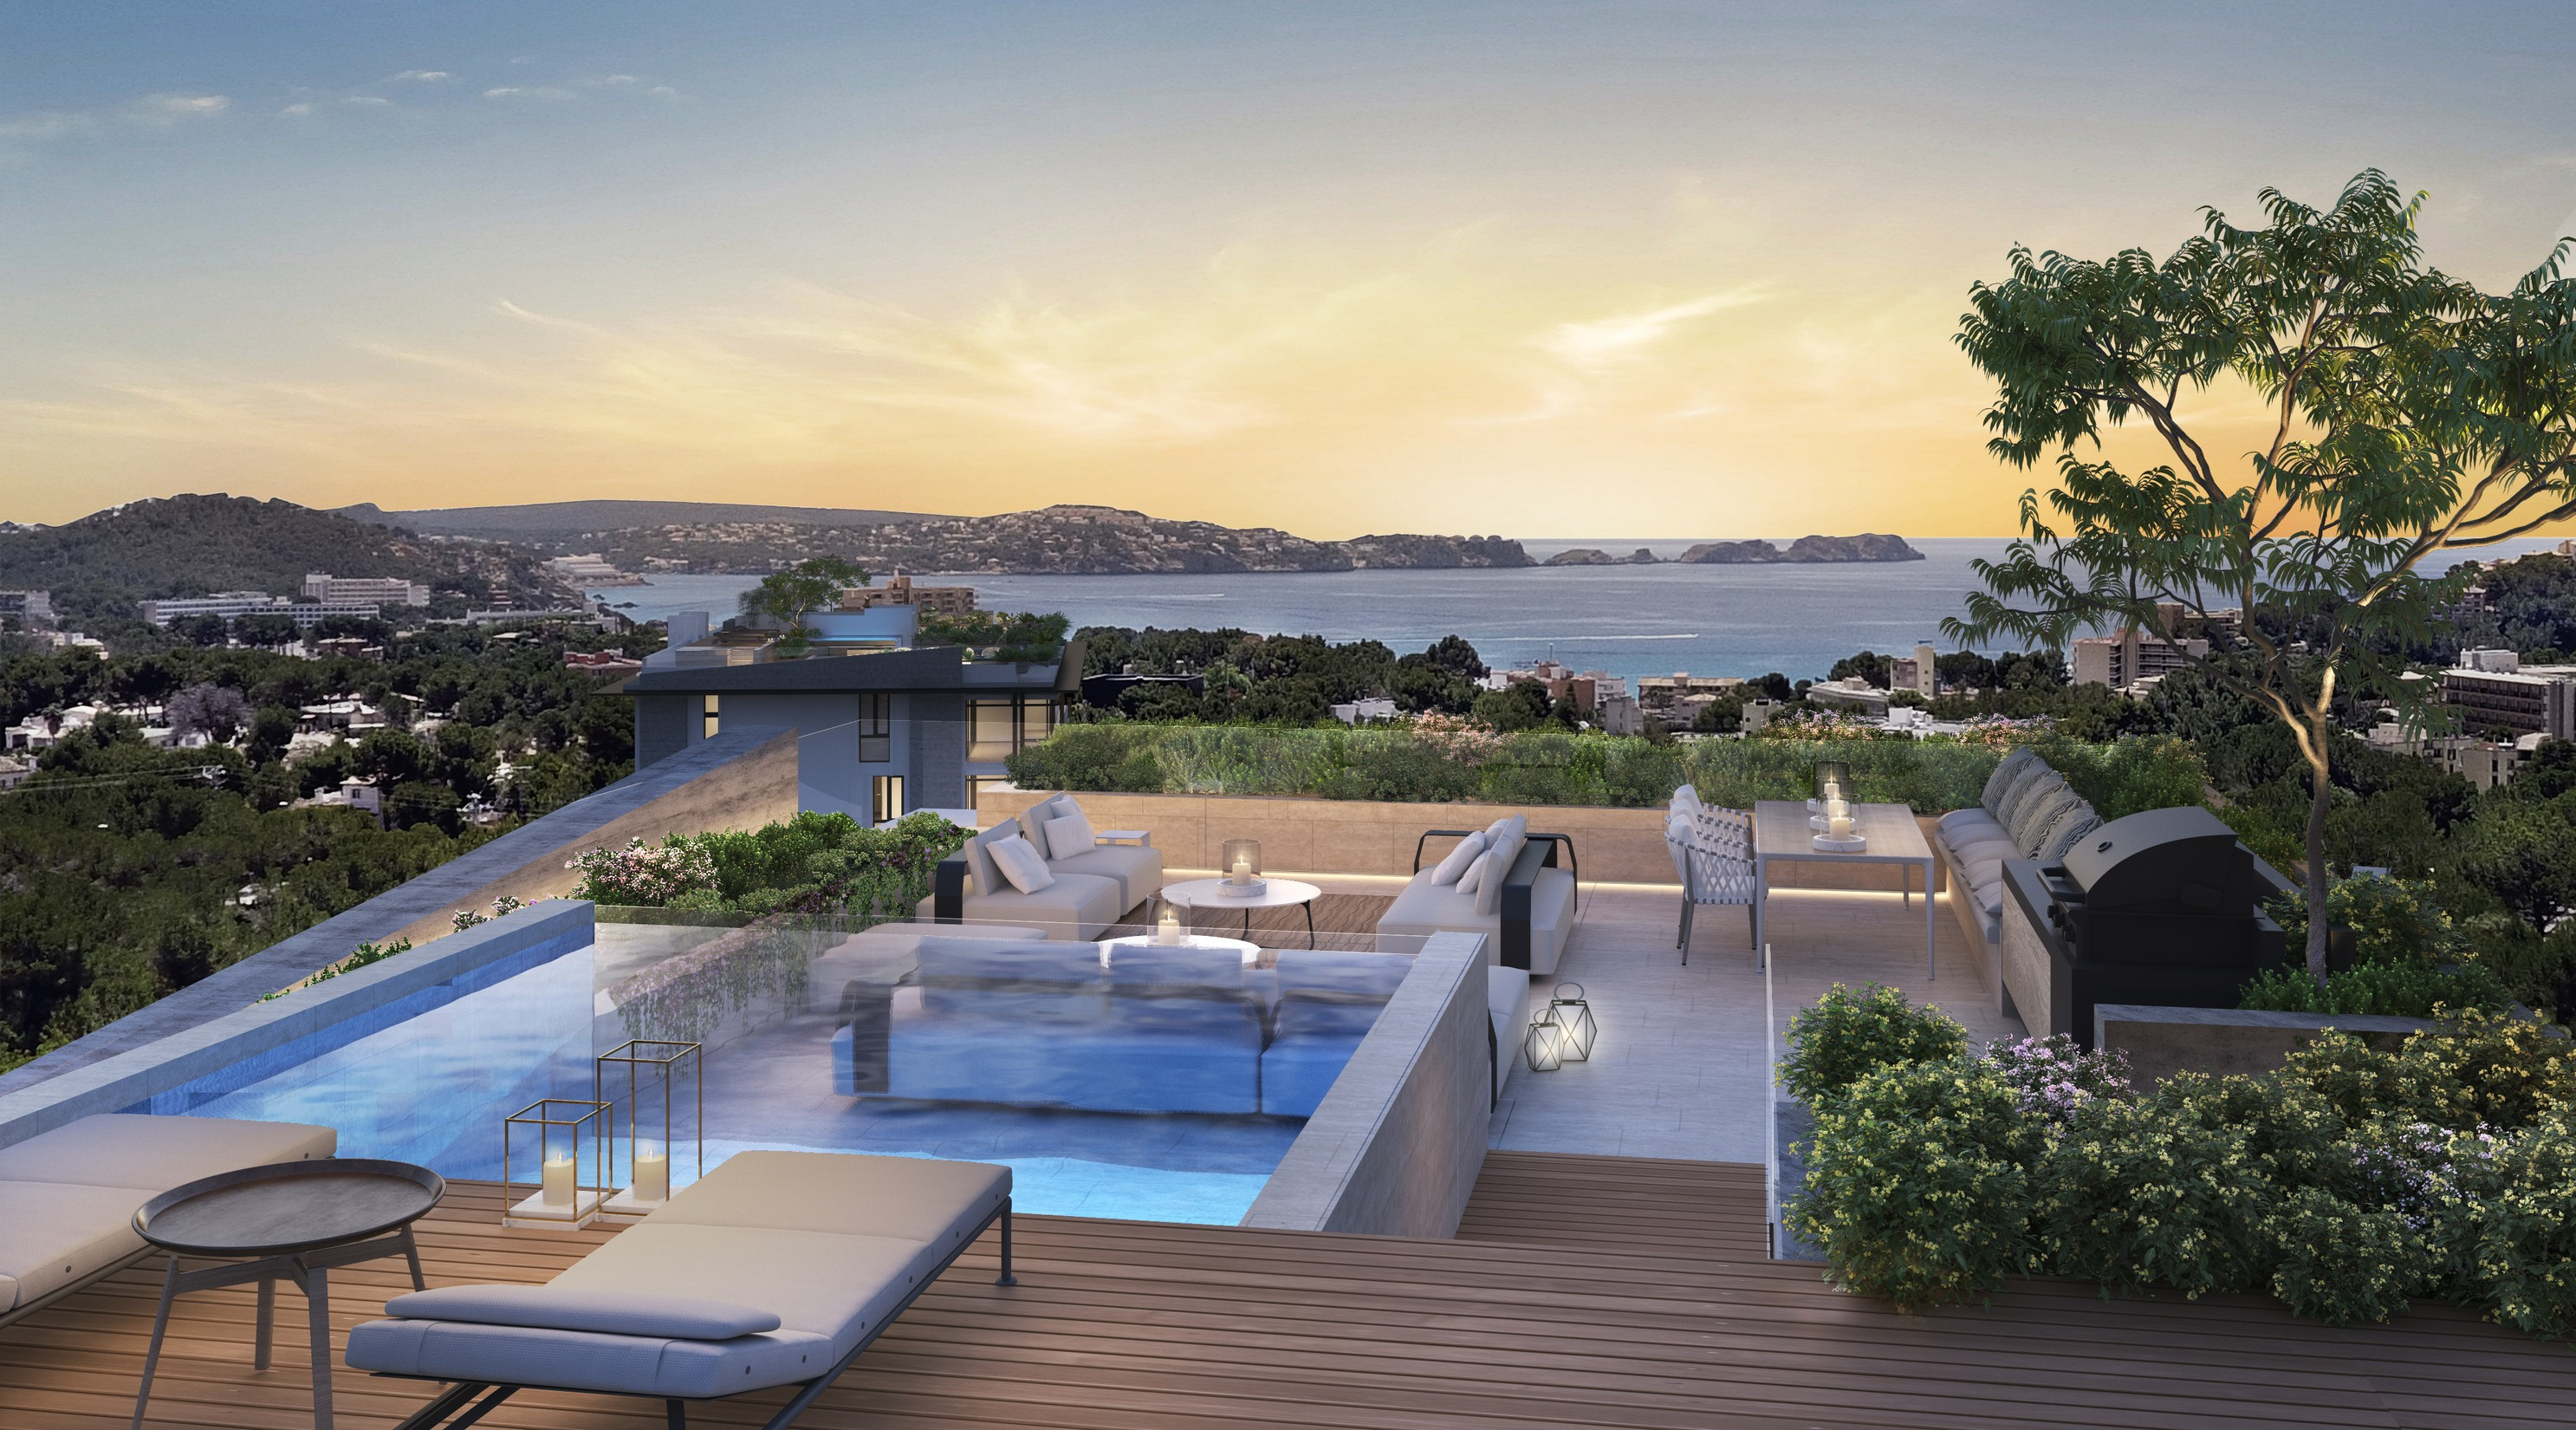 New penthouses with swimming pools luxury resort | 8416 | Mallorca ...